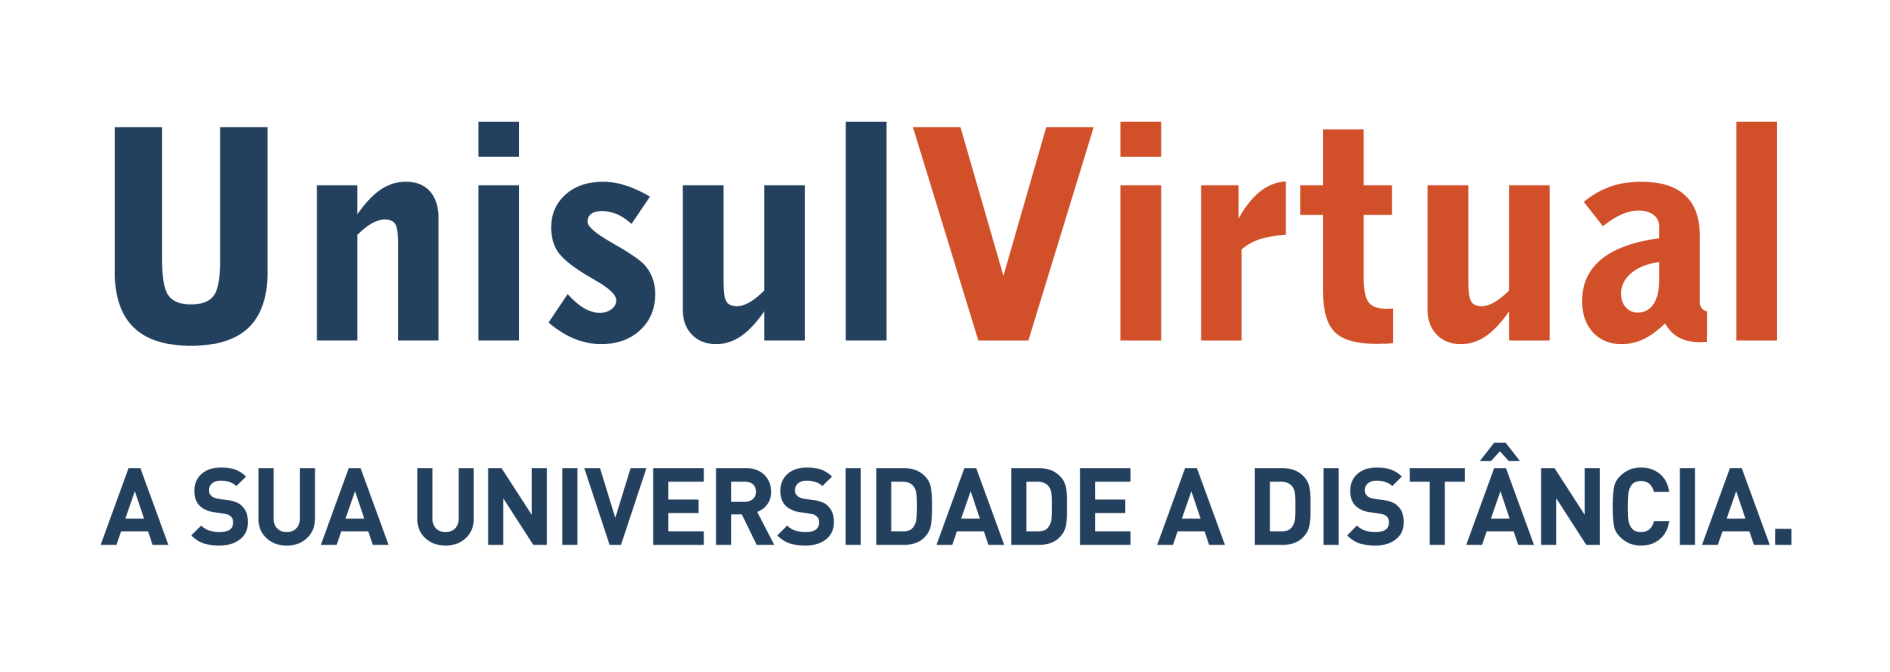 https://www.abraphe.org.br/wp-content/uploads/2019/04/unisul-virtual.png